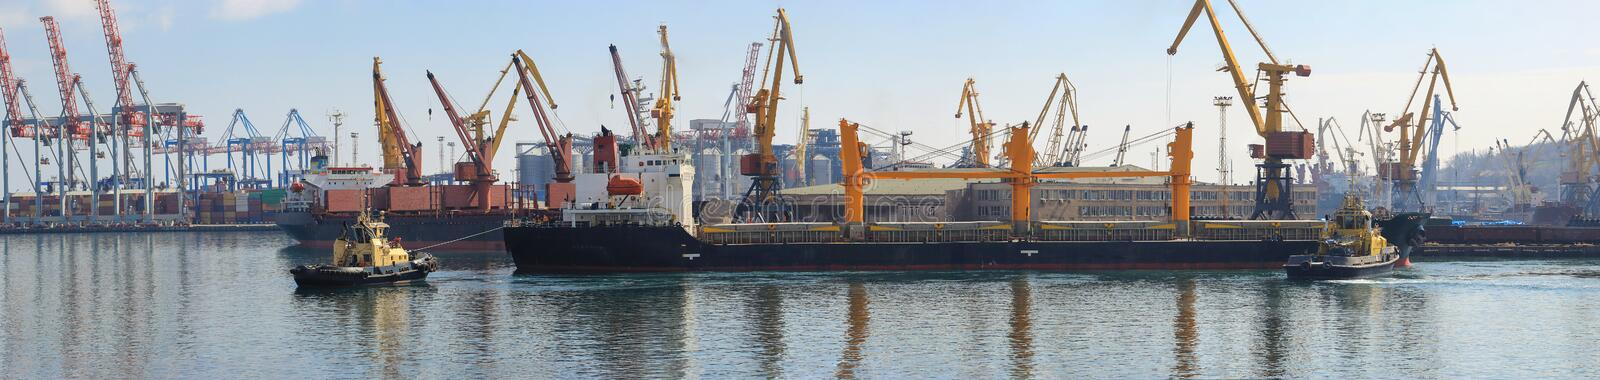 Tugboat at the bow of cargo ship , assisting the vessel to maneuver in Sea Port. Of Odessa. Lifting cargo cranes, ships and grain dryer in  Port stock photo